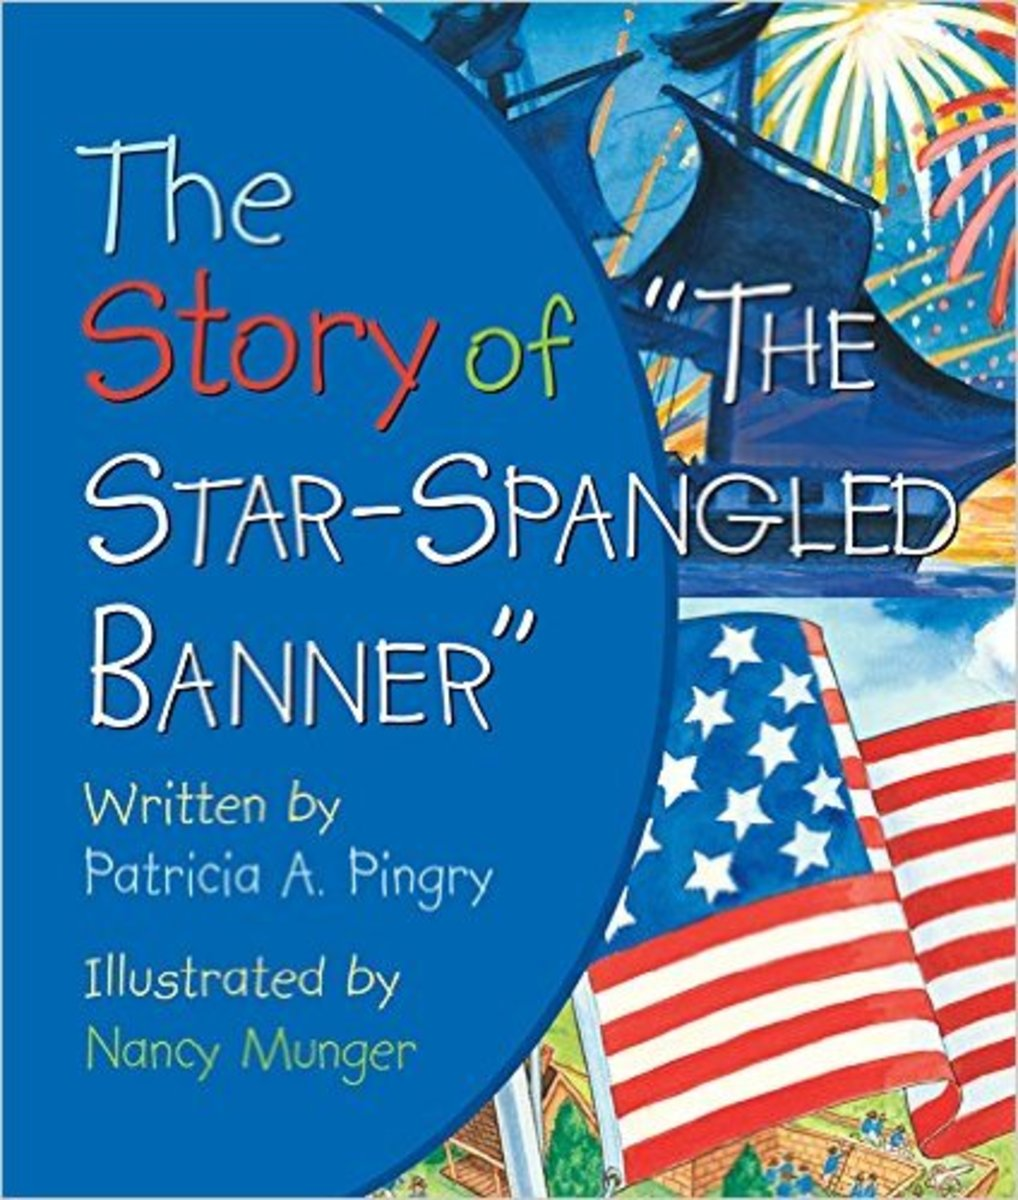 The Story of 'The Star-Spangled Banner' by Patricia A. Pingry